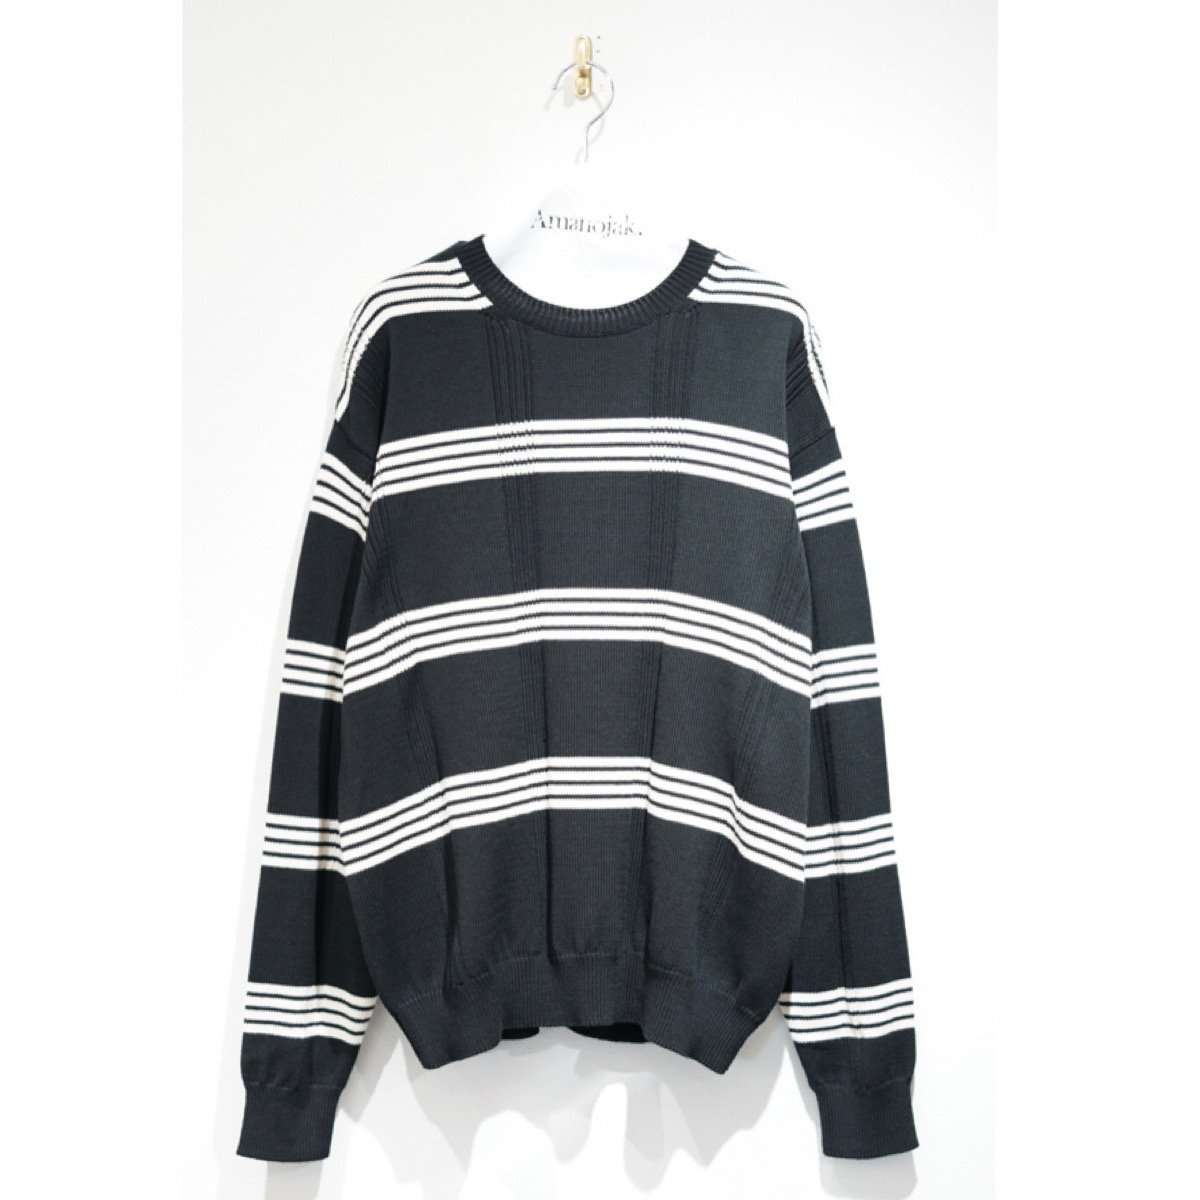 BATONER-AGING COTTON BORDER CREW NECK BLACK/IVORY